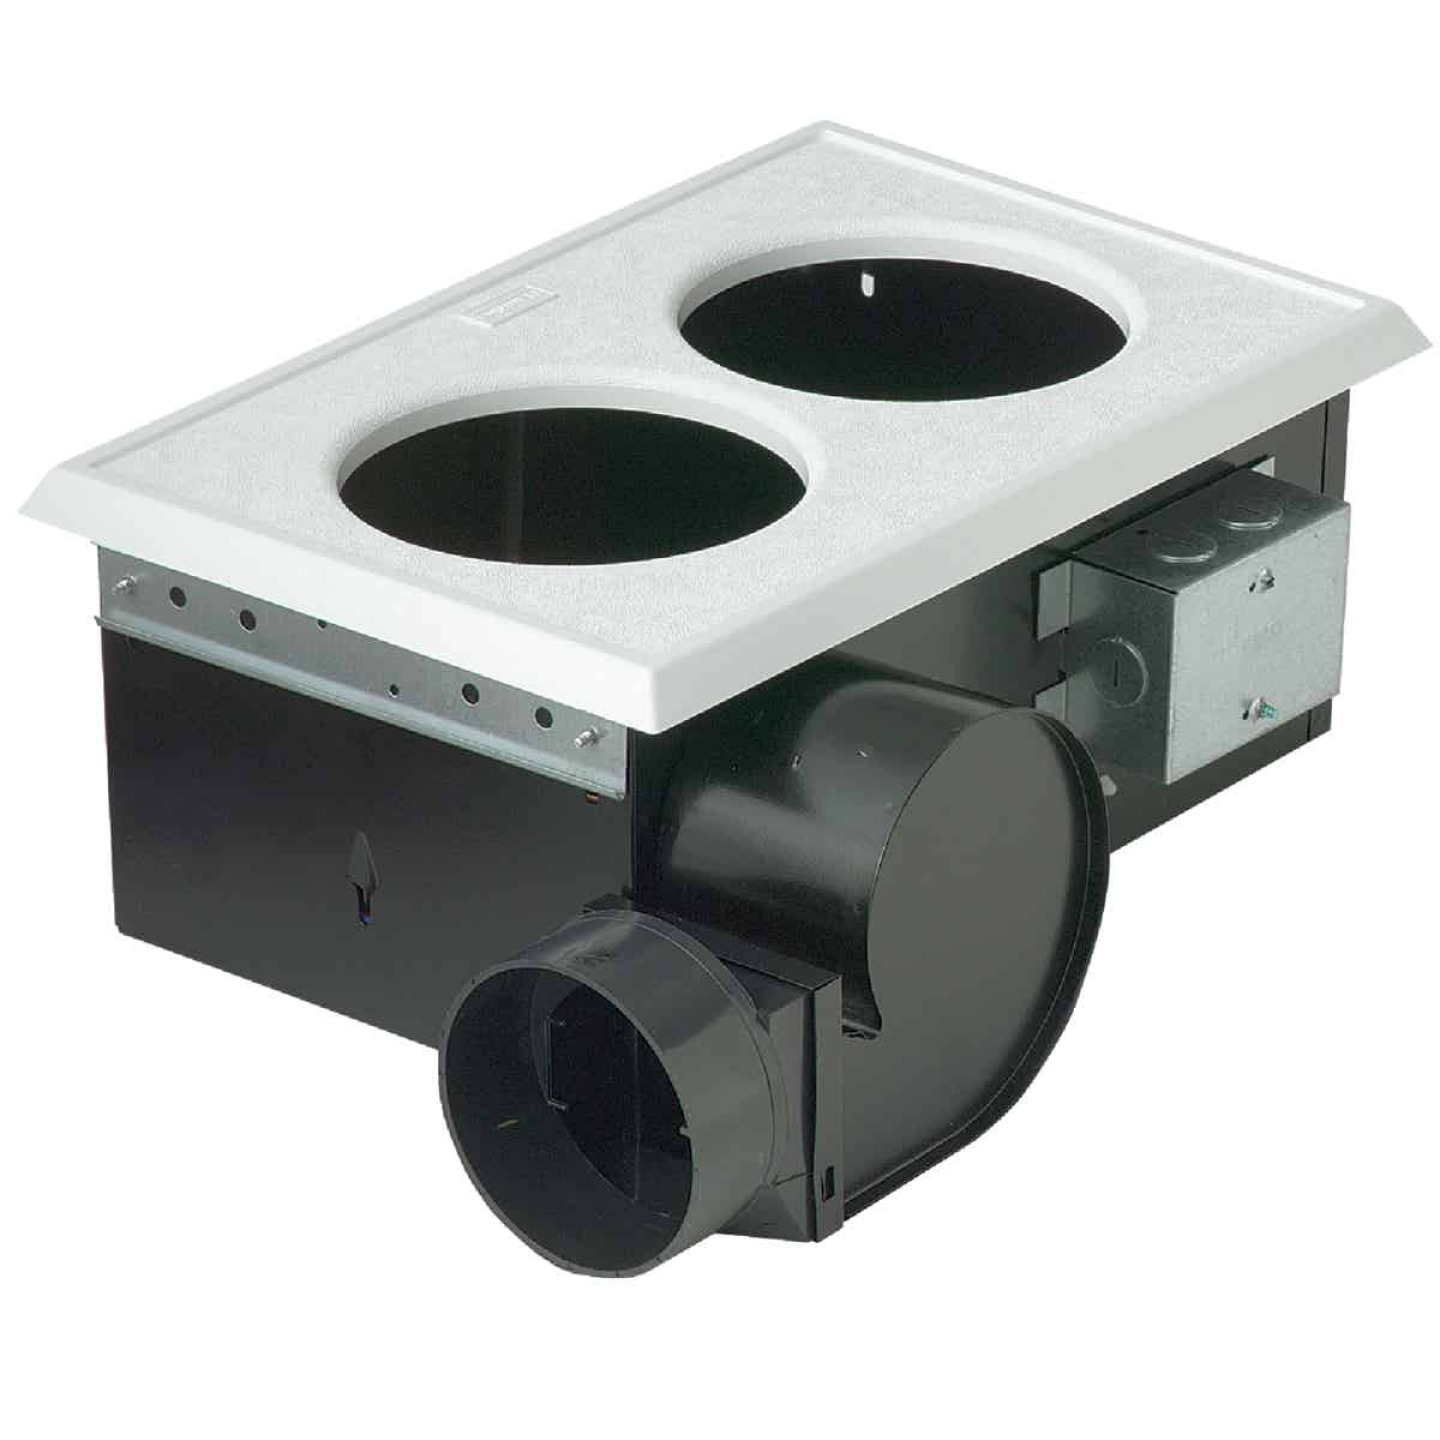 Broan 70 CFM 3.5 Sones 120V Bath Exhaust Fan Image 1